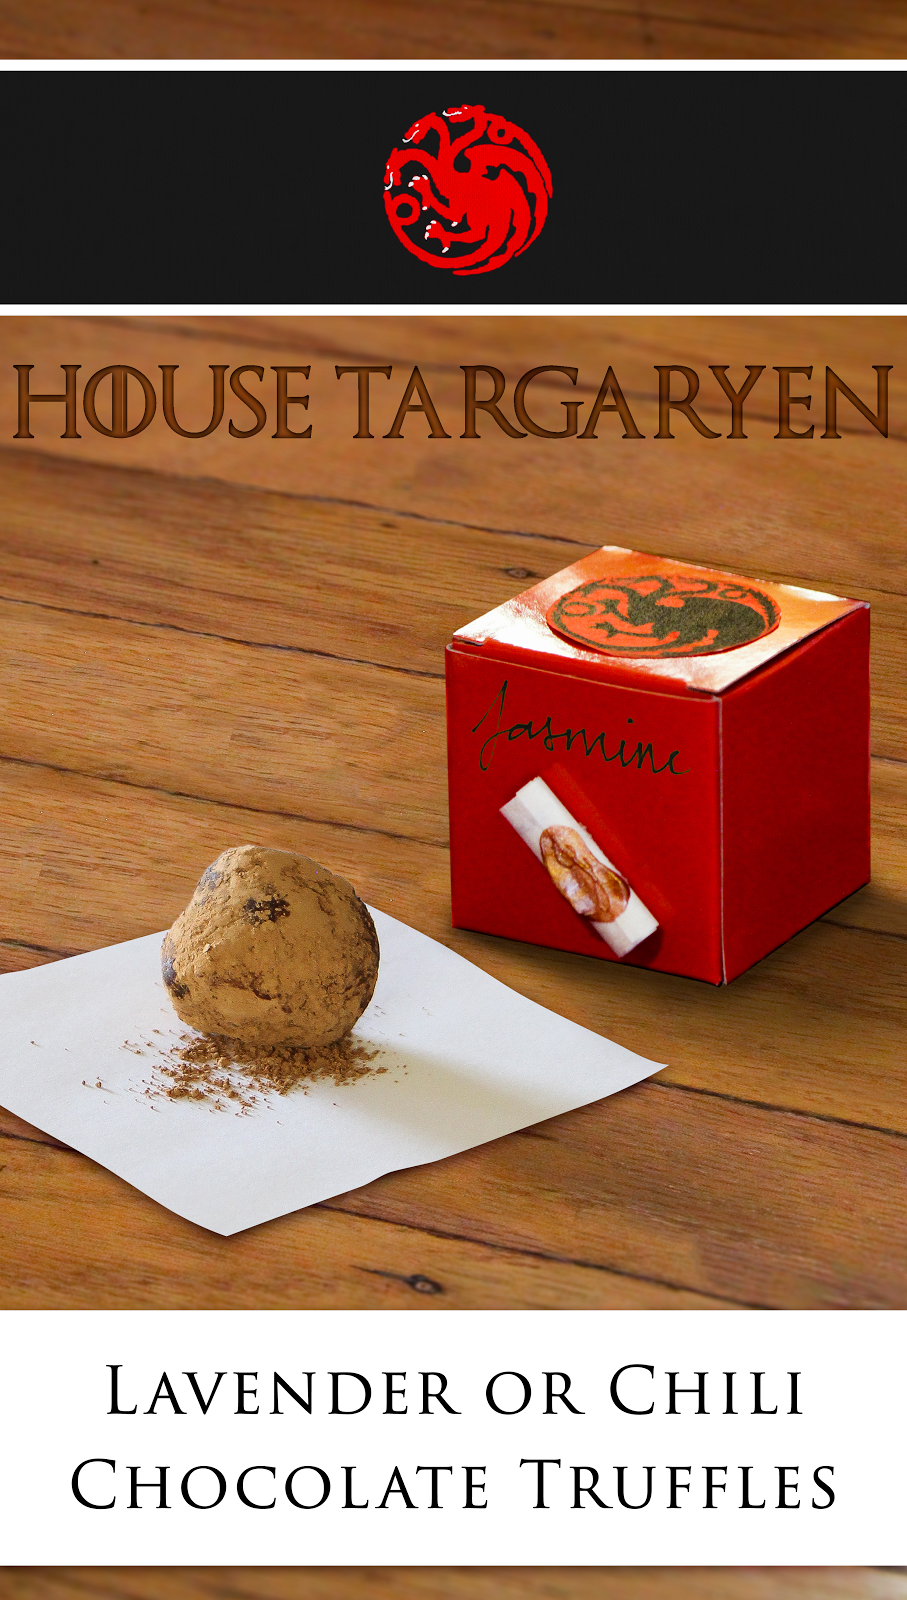 Targaryens are either great leaders or mad. Which sort of Targaryen would you be? Lavender or chili chocolate truffles.